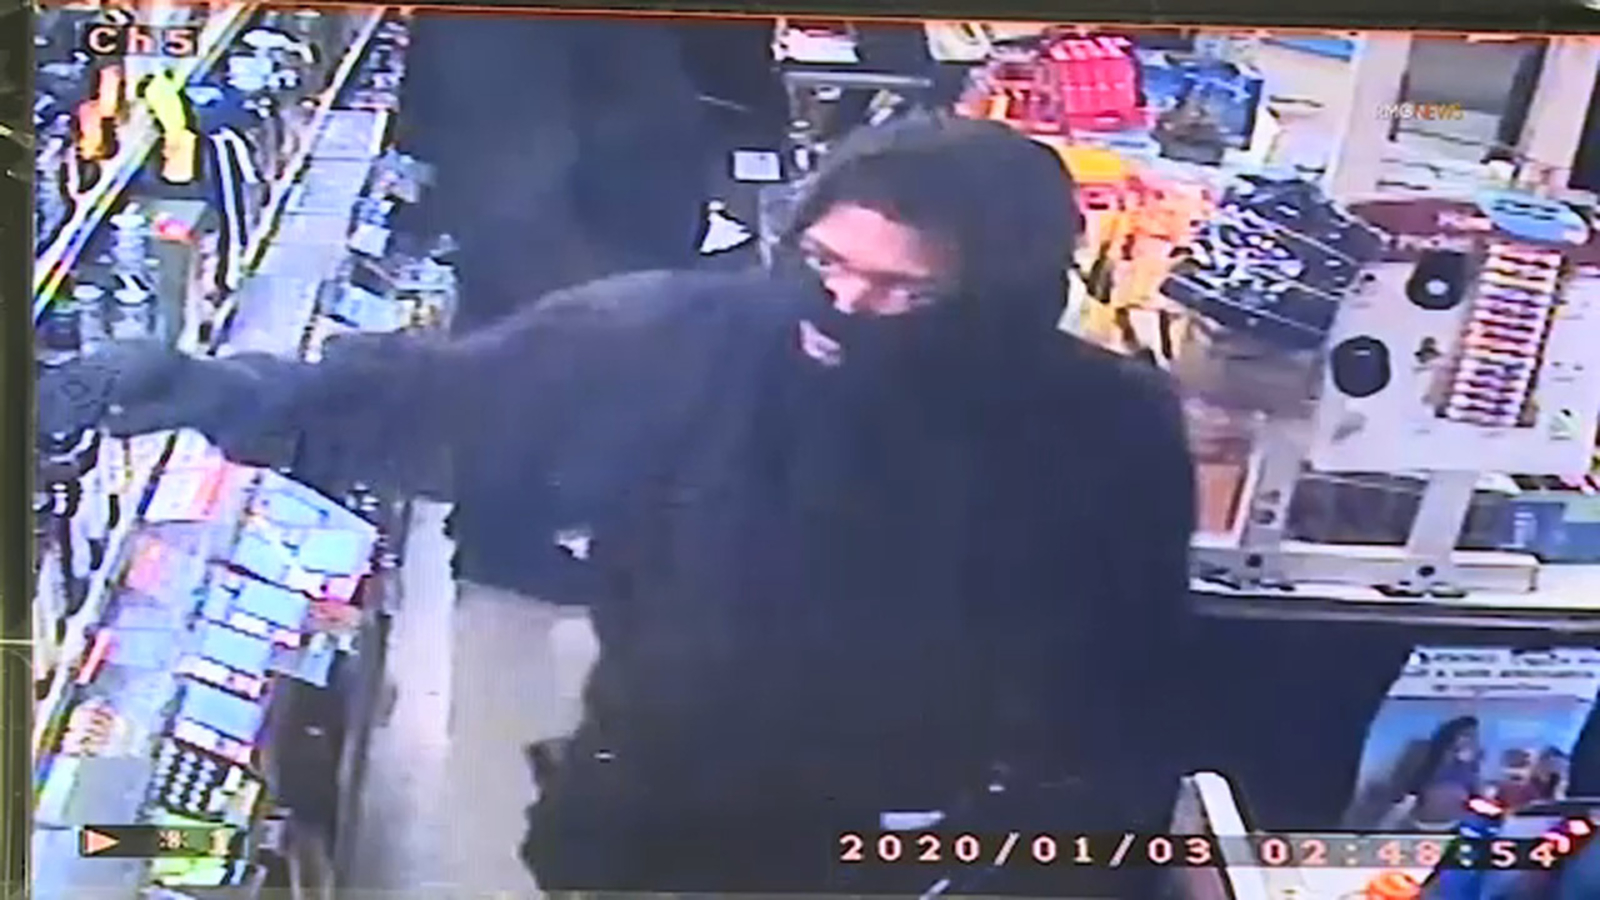 2 armed suspects sought in robbery of Mar Vista, Culver City liquor stores caught on tape